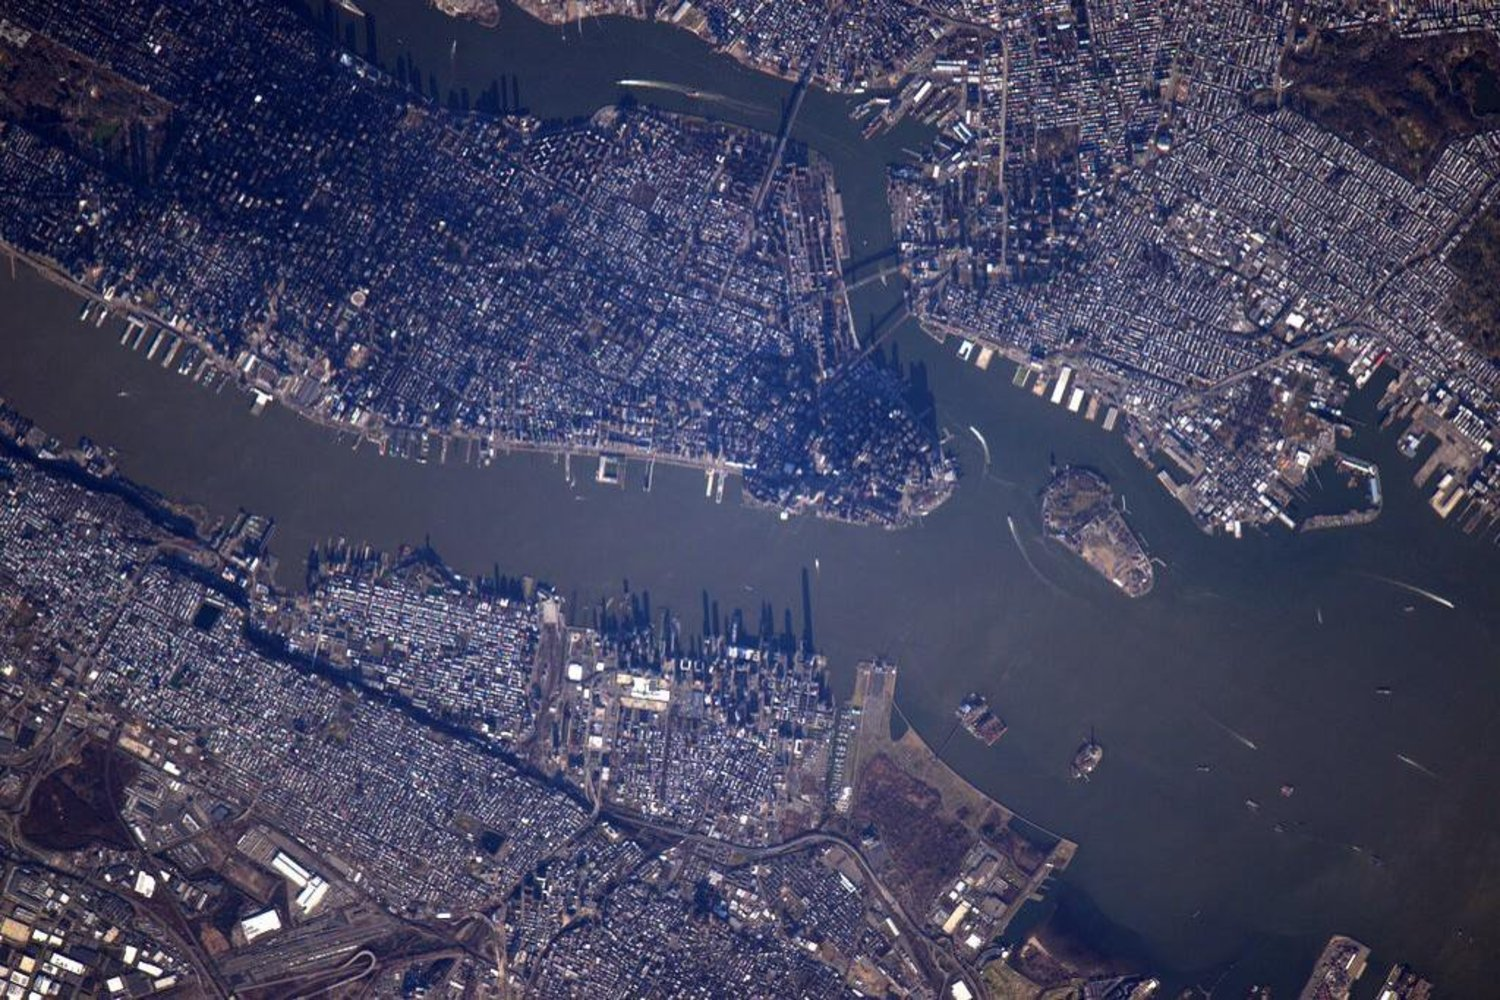 Just flew over #NYC. One of my favorite places on Earth and yes, we have a very big lens. #YearInSpace http://t.co/fZfwqSR9R4